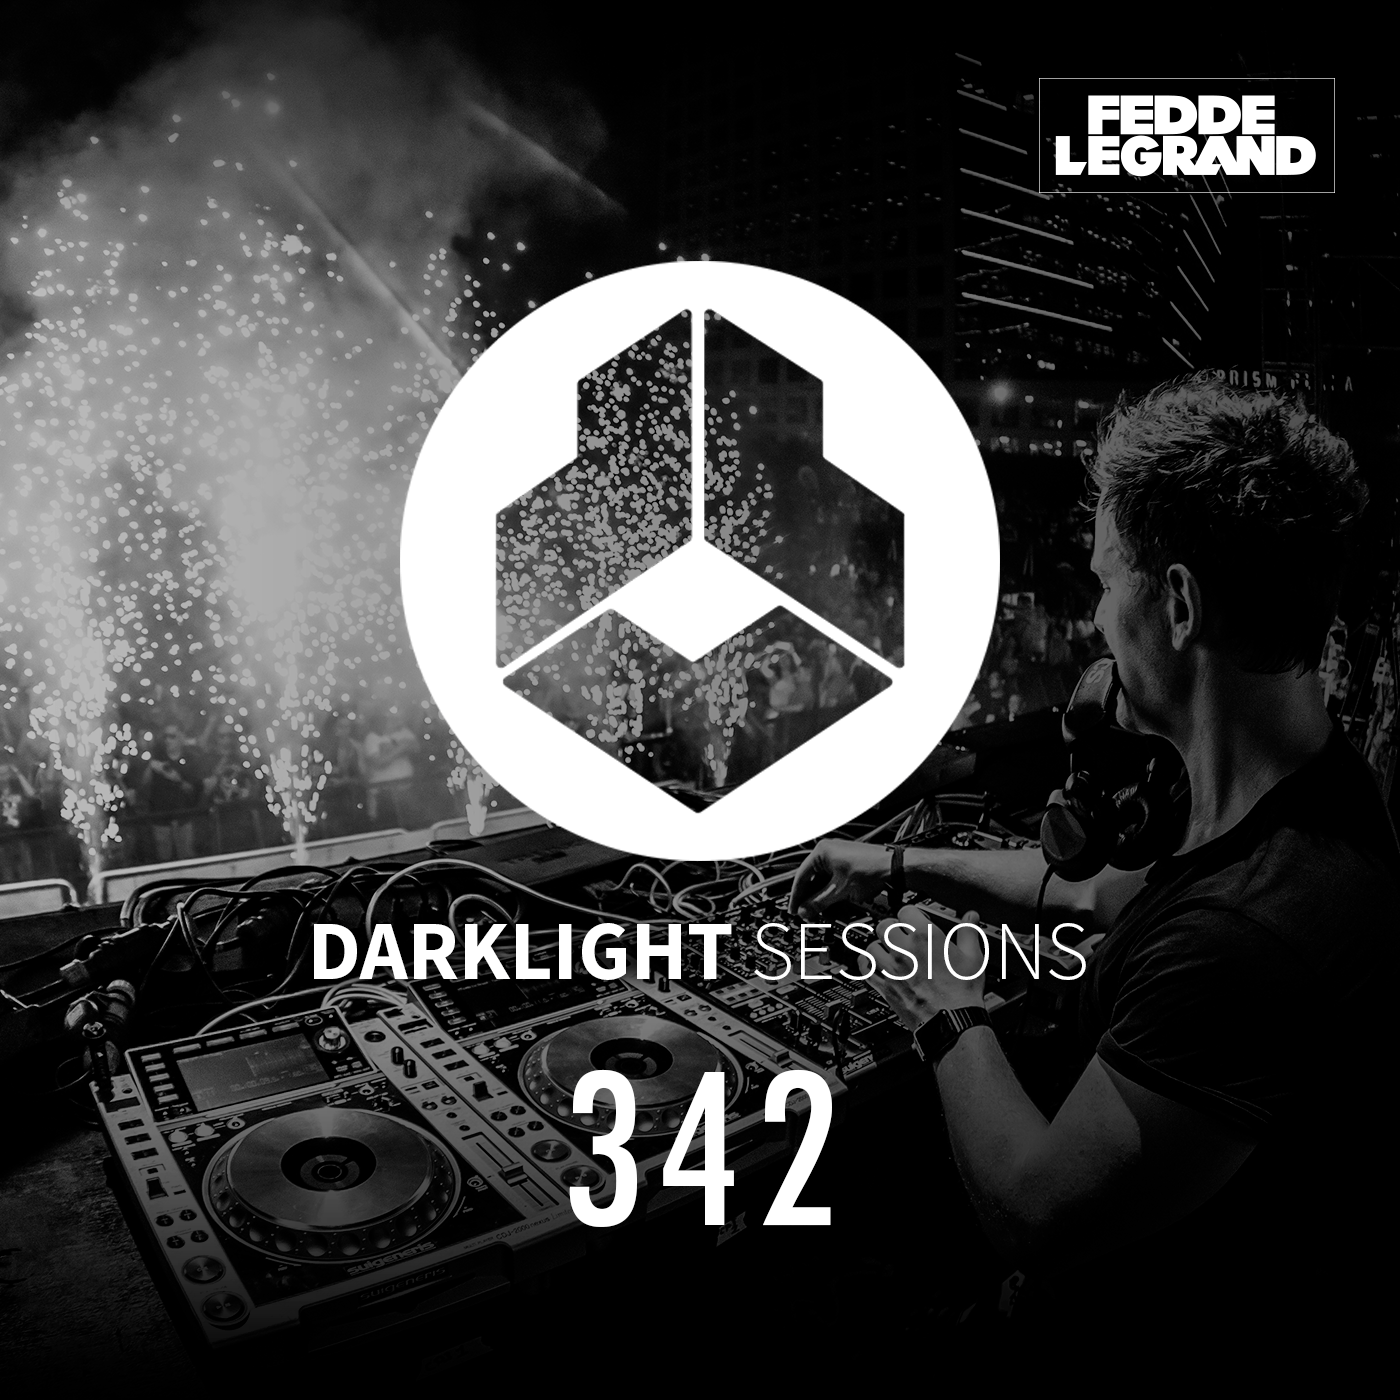 Darklight Sessions 342